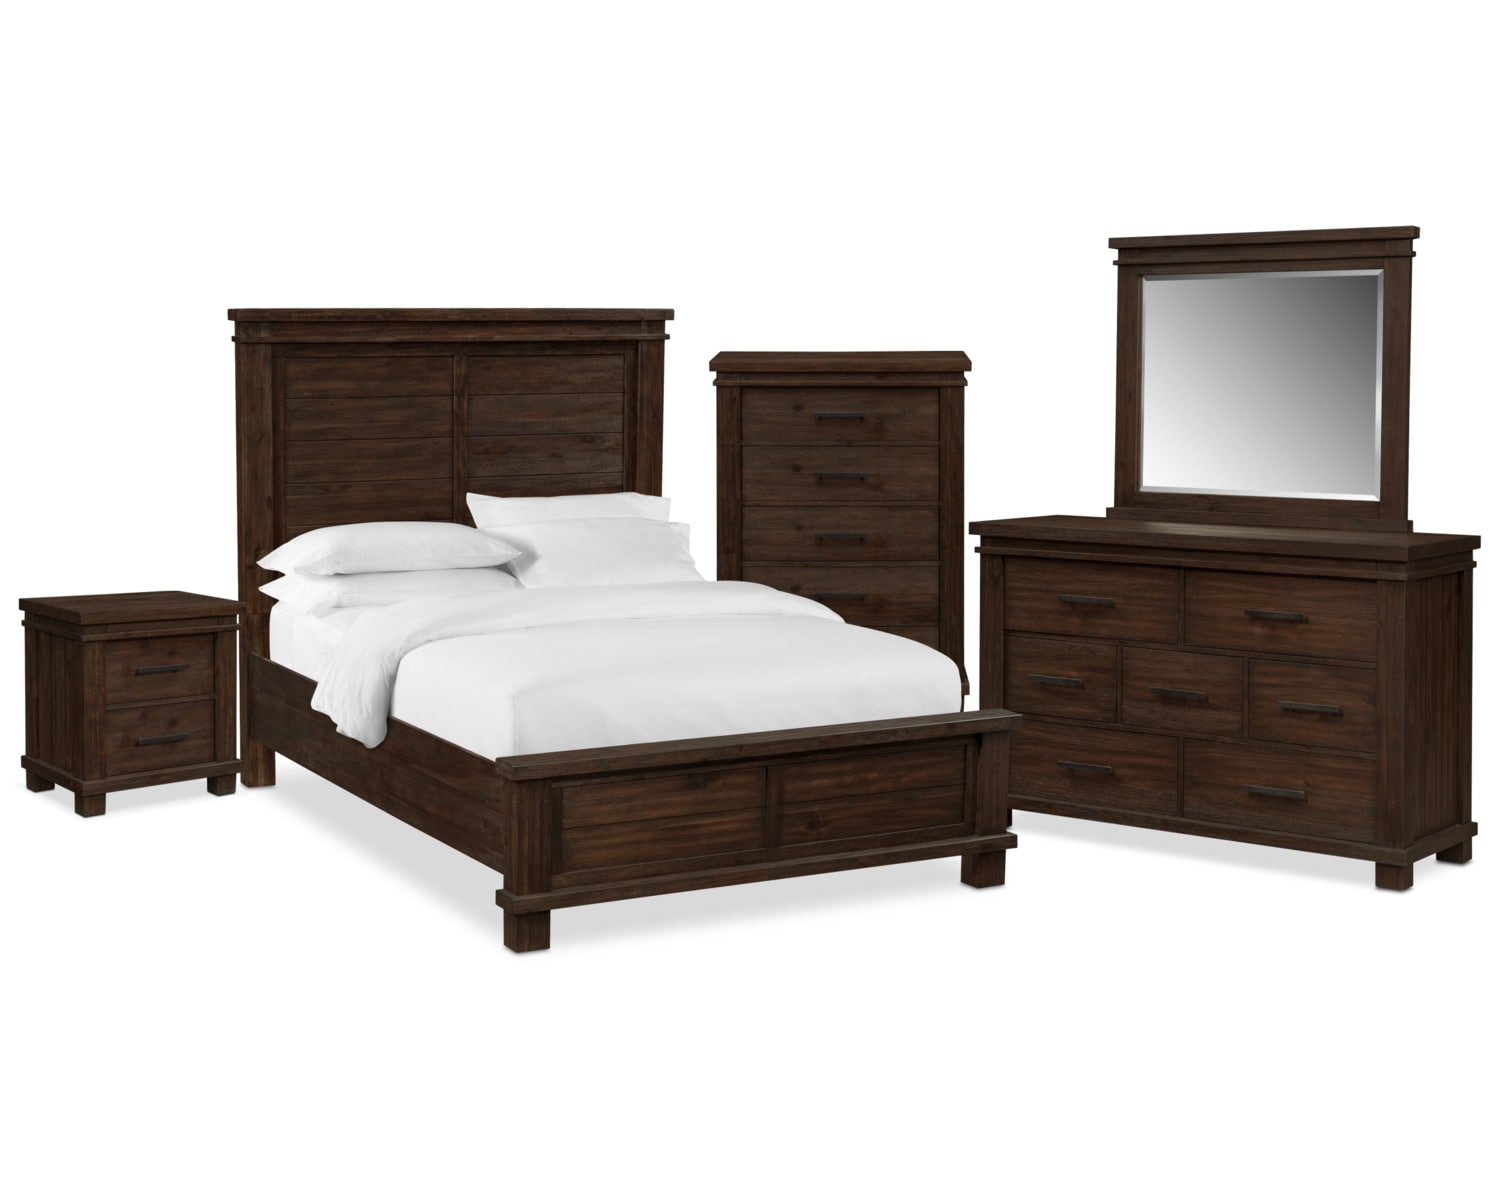 The Tribeca Bedroom Collection - Tobacco